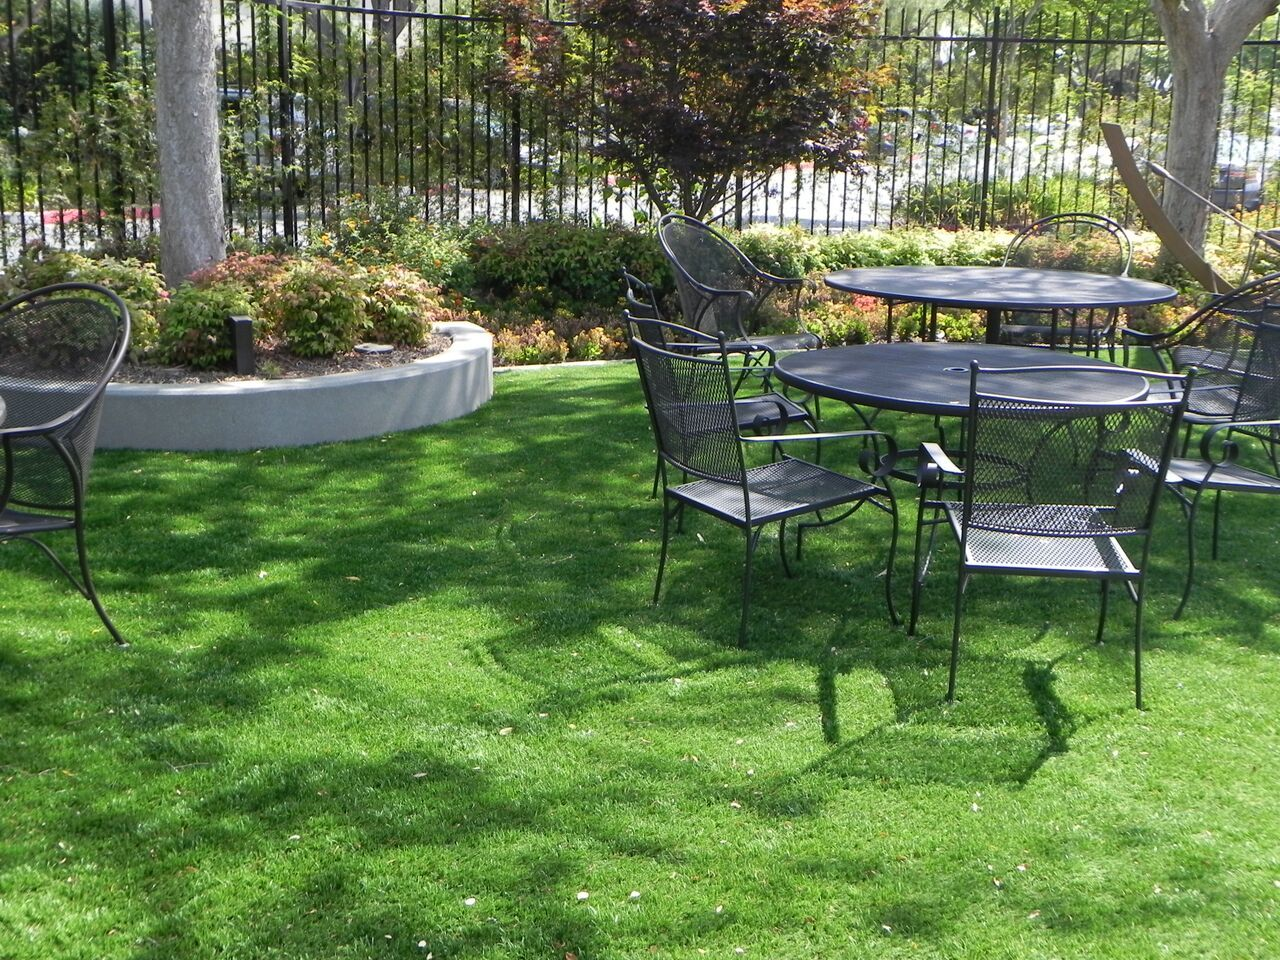 Artificial Turf Lawn Grass Experts Sold at Costco